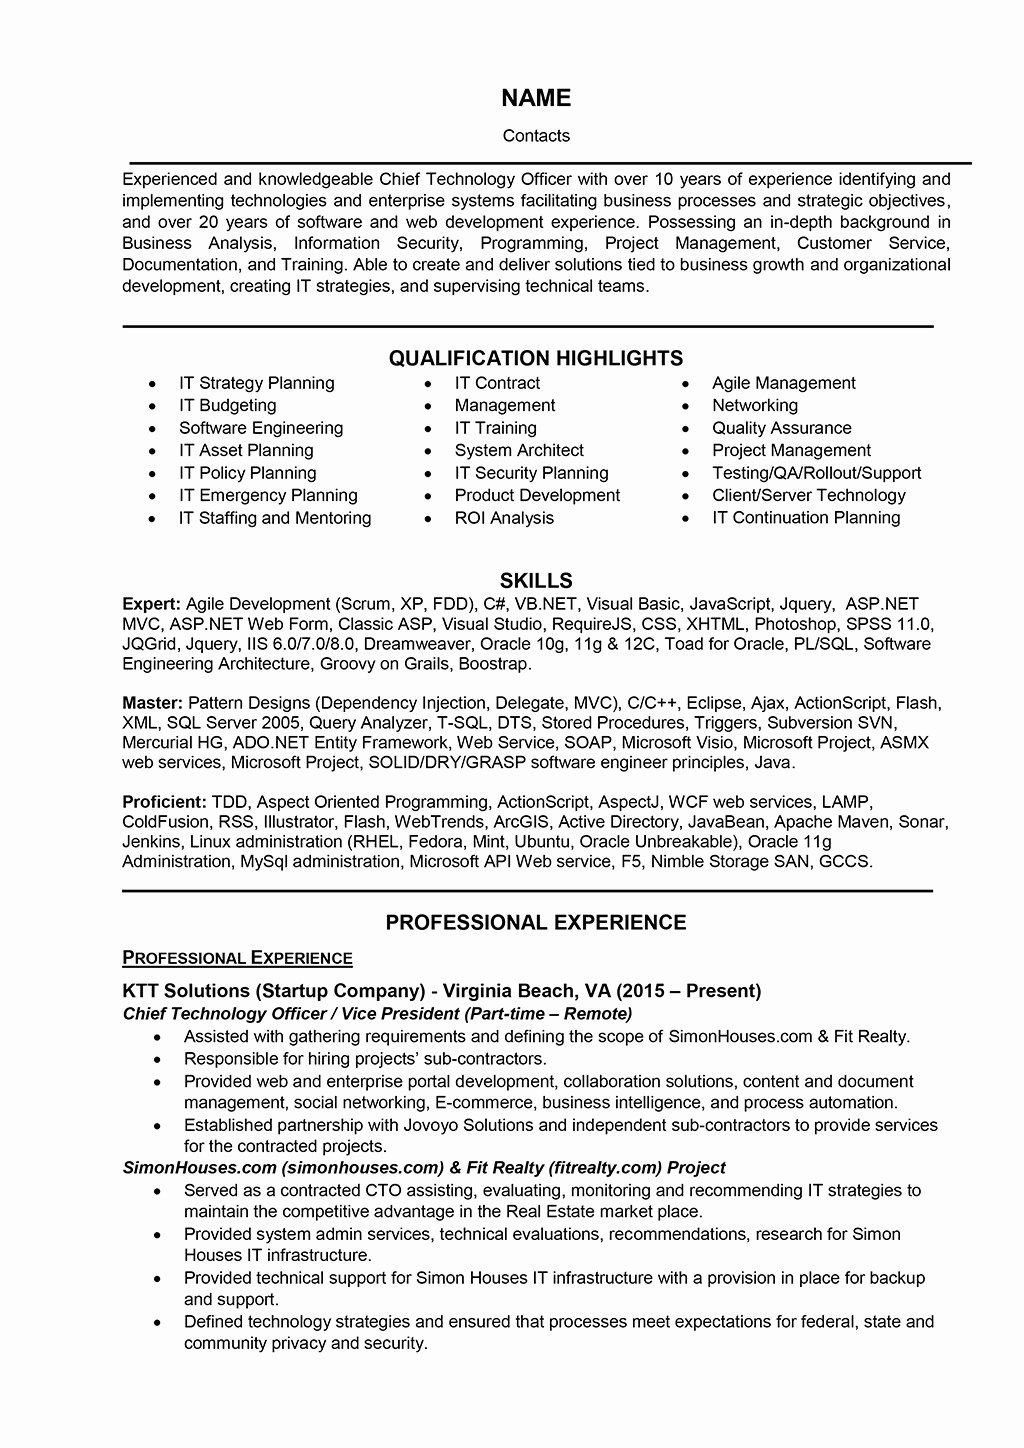 Information Technology Manager Resume